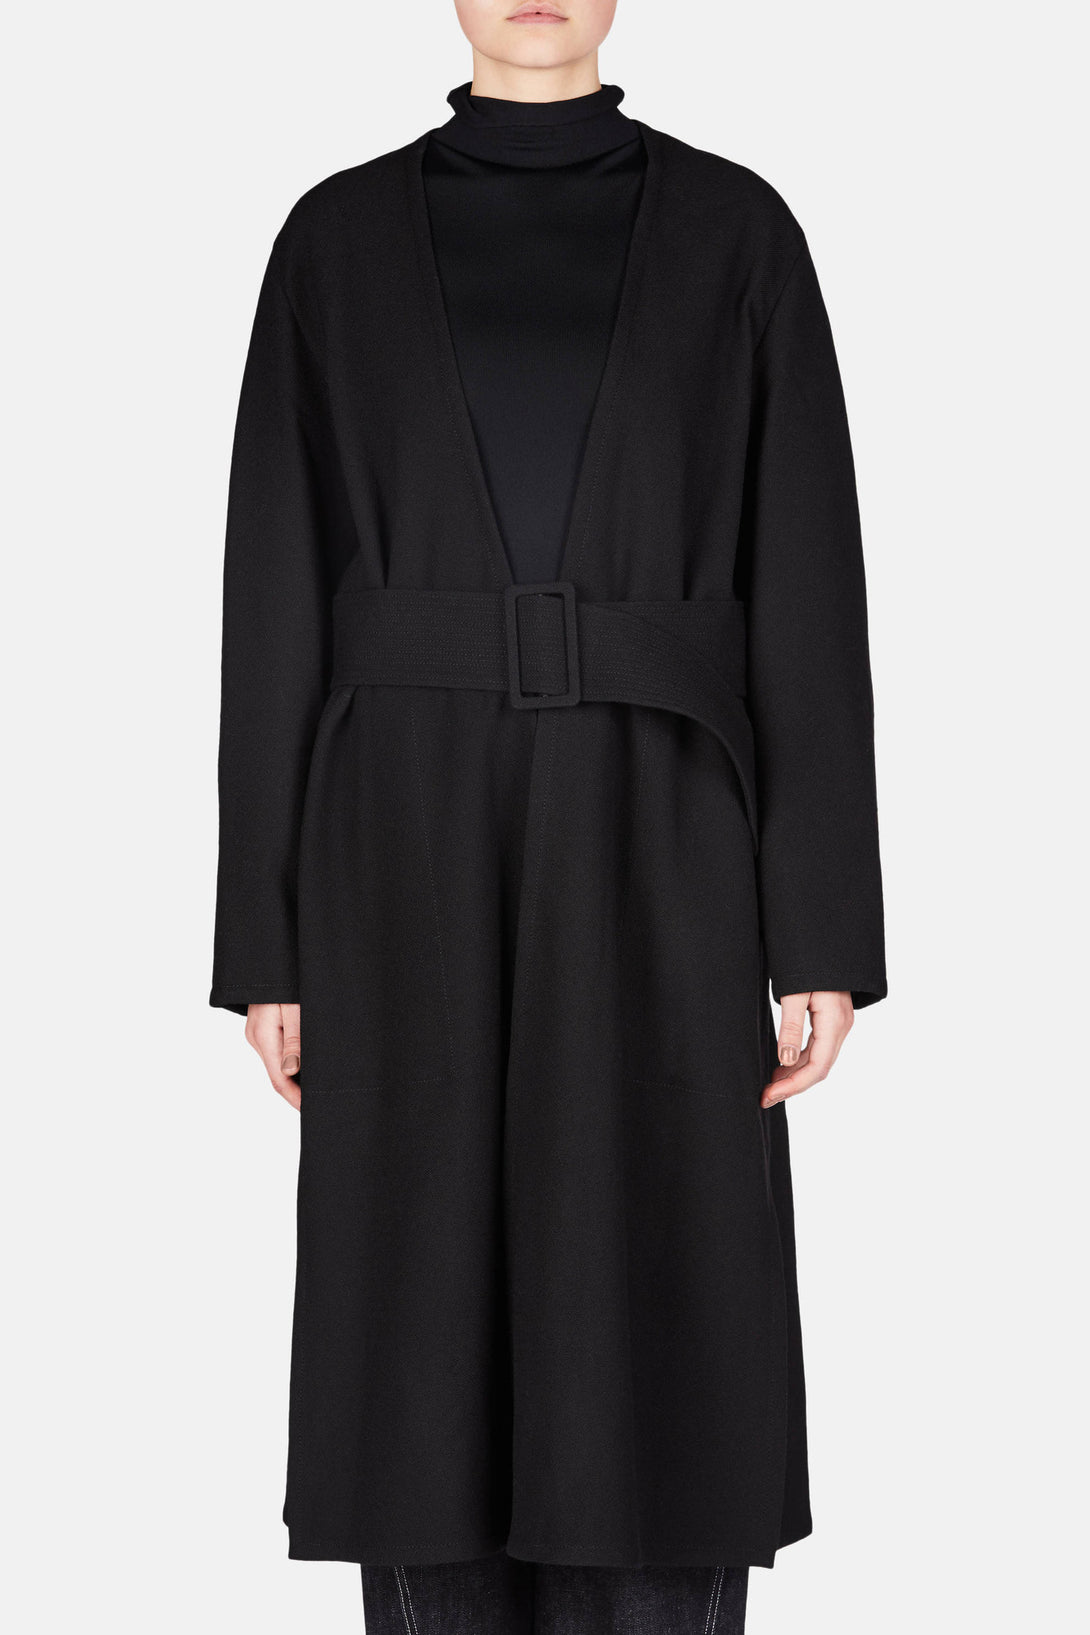 Wrapover Belted Coat - Black